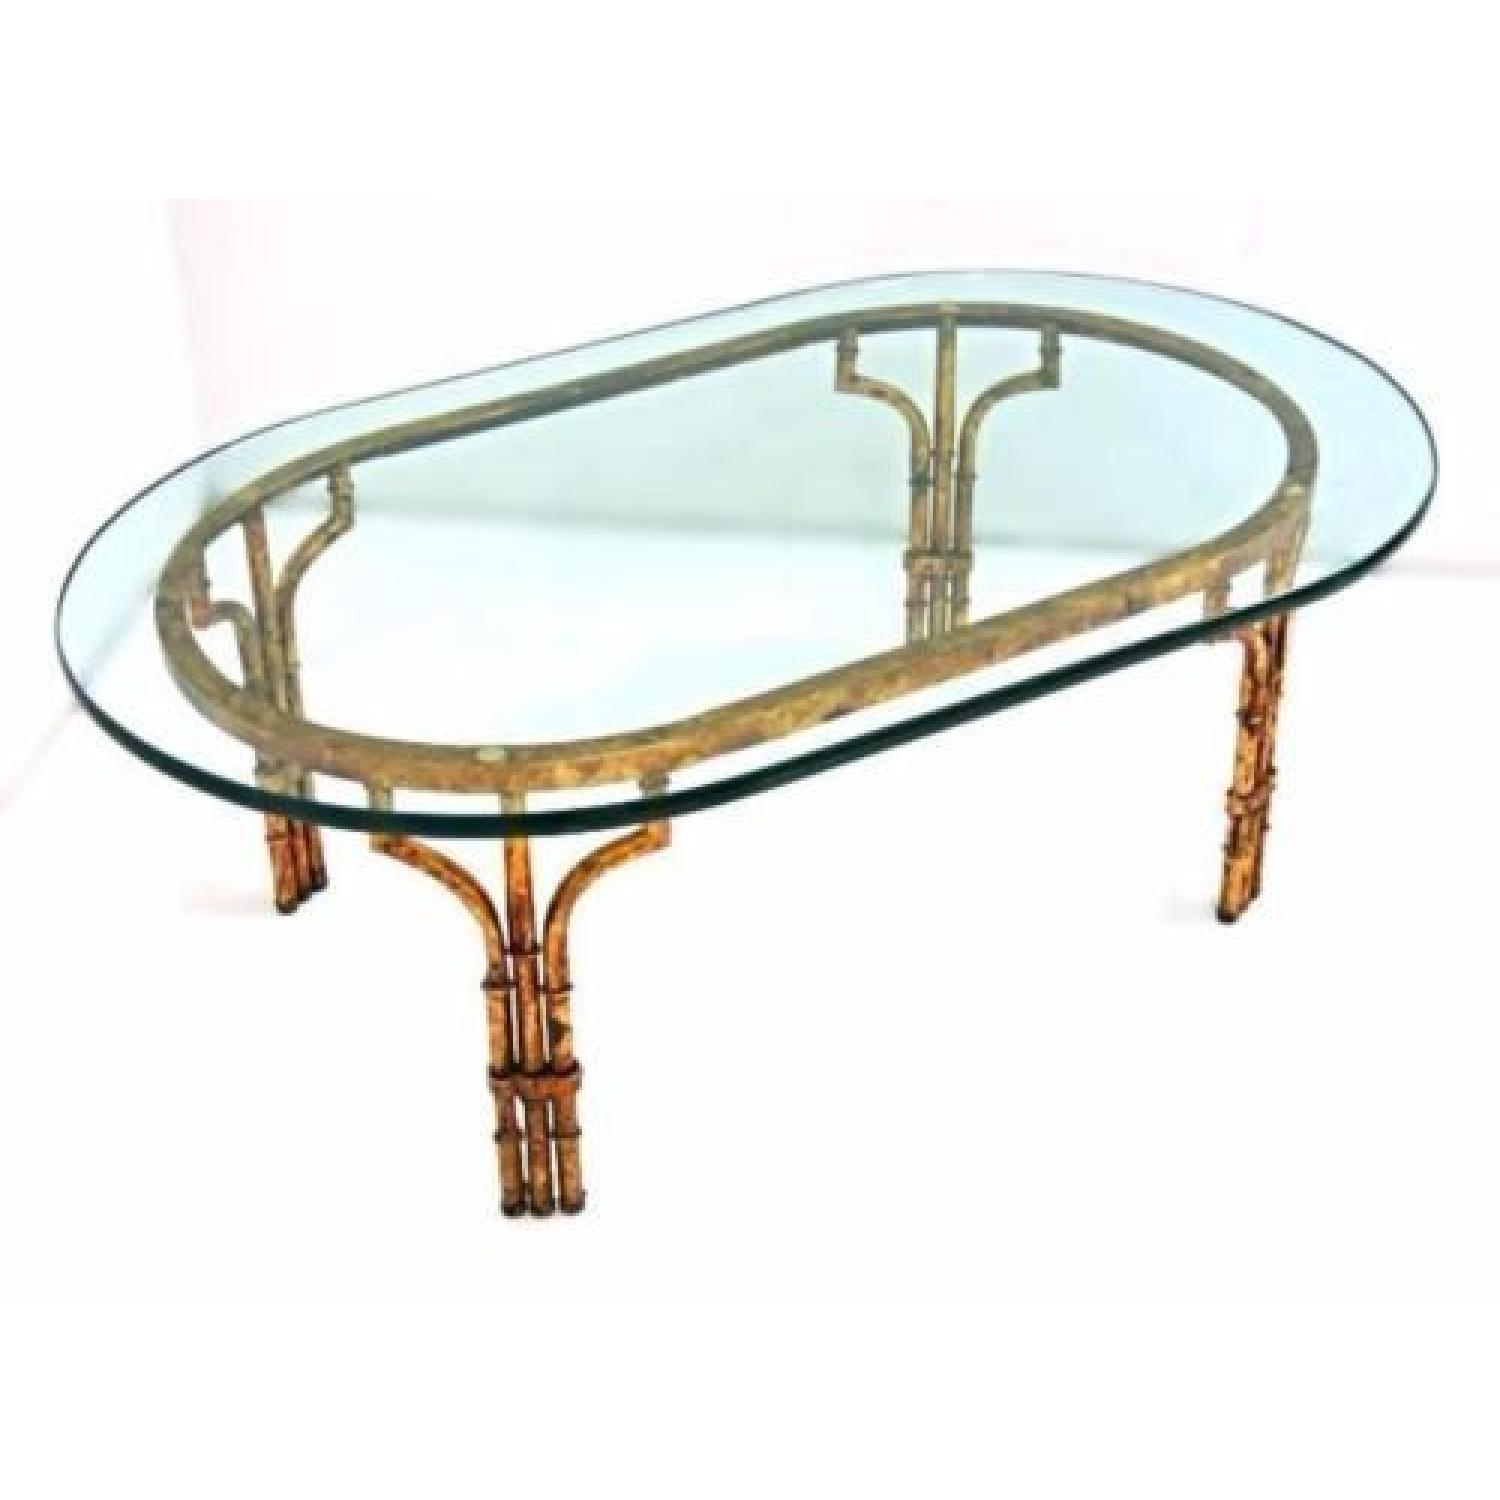 Faux Bamboo Mid Century Modern Oval Glass Top Coffee Table